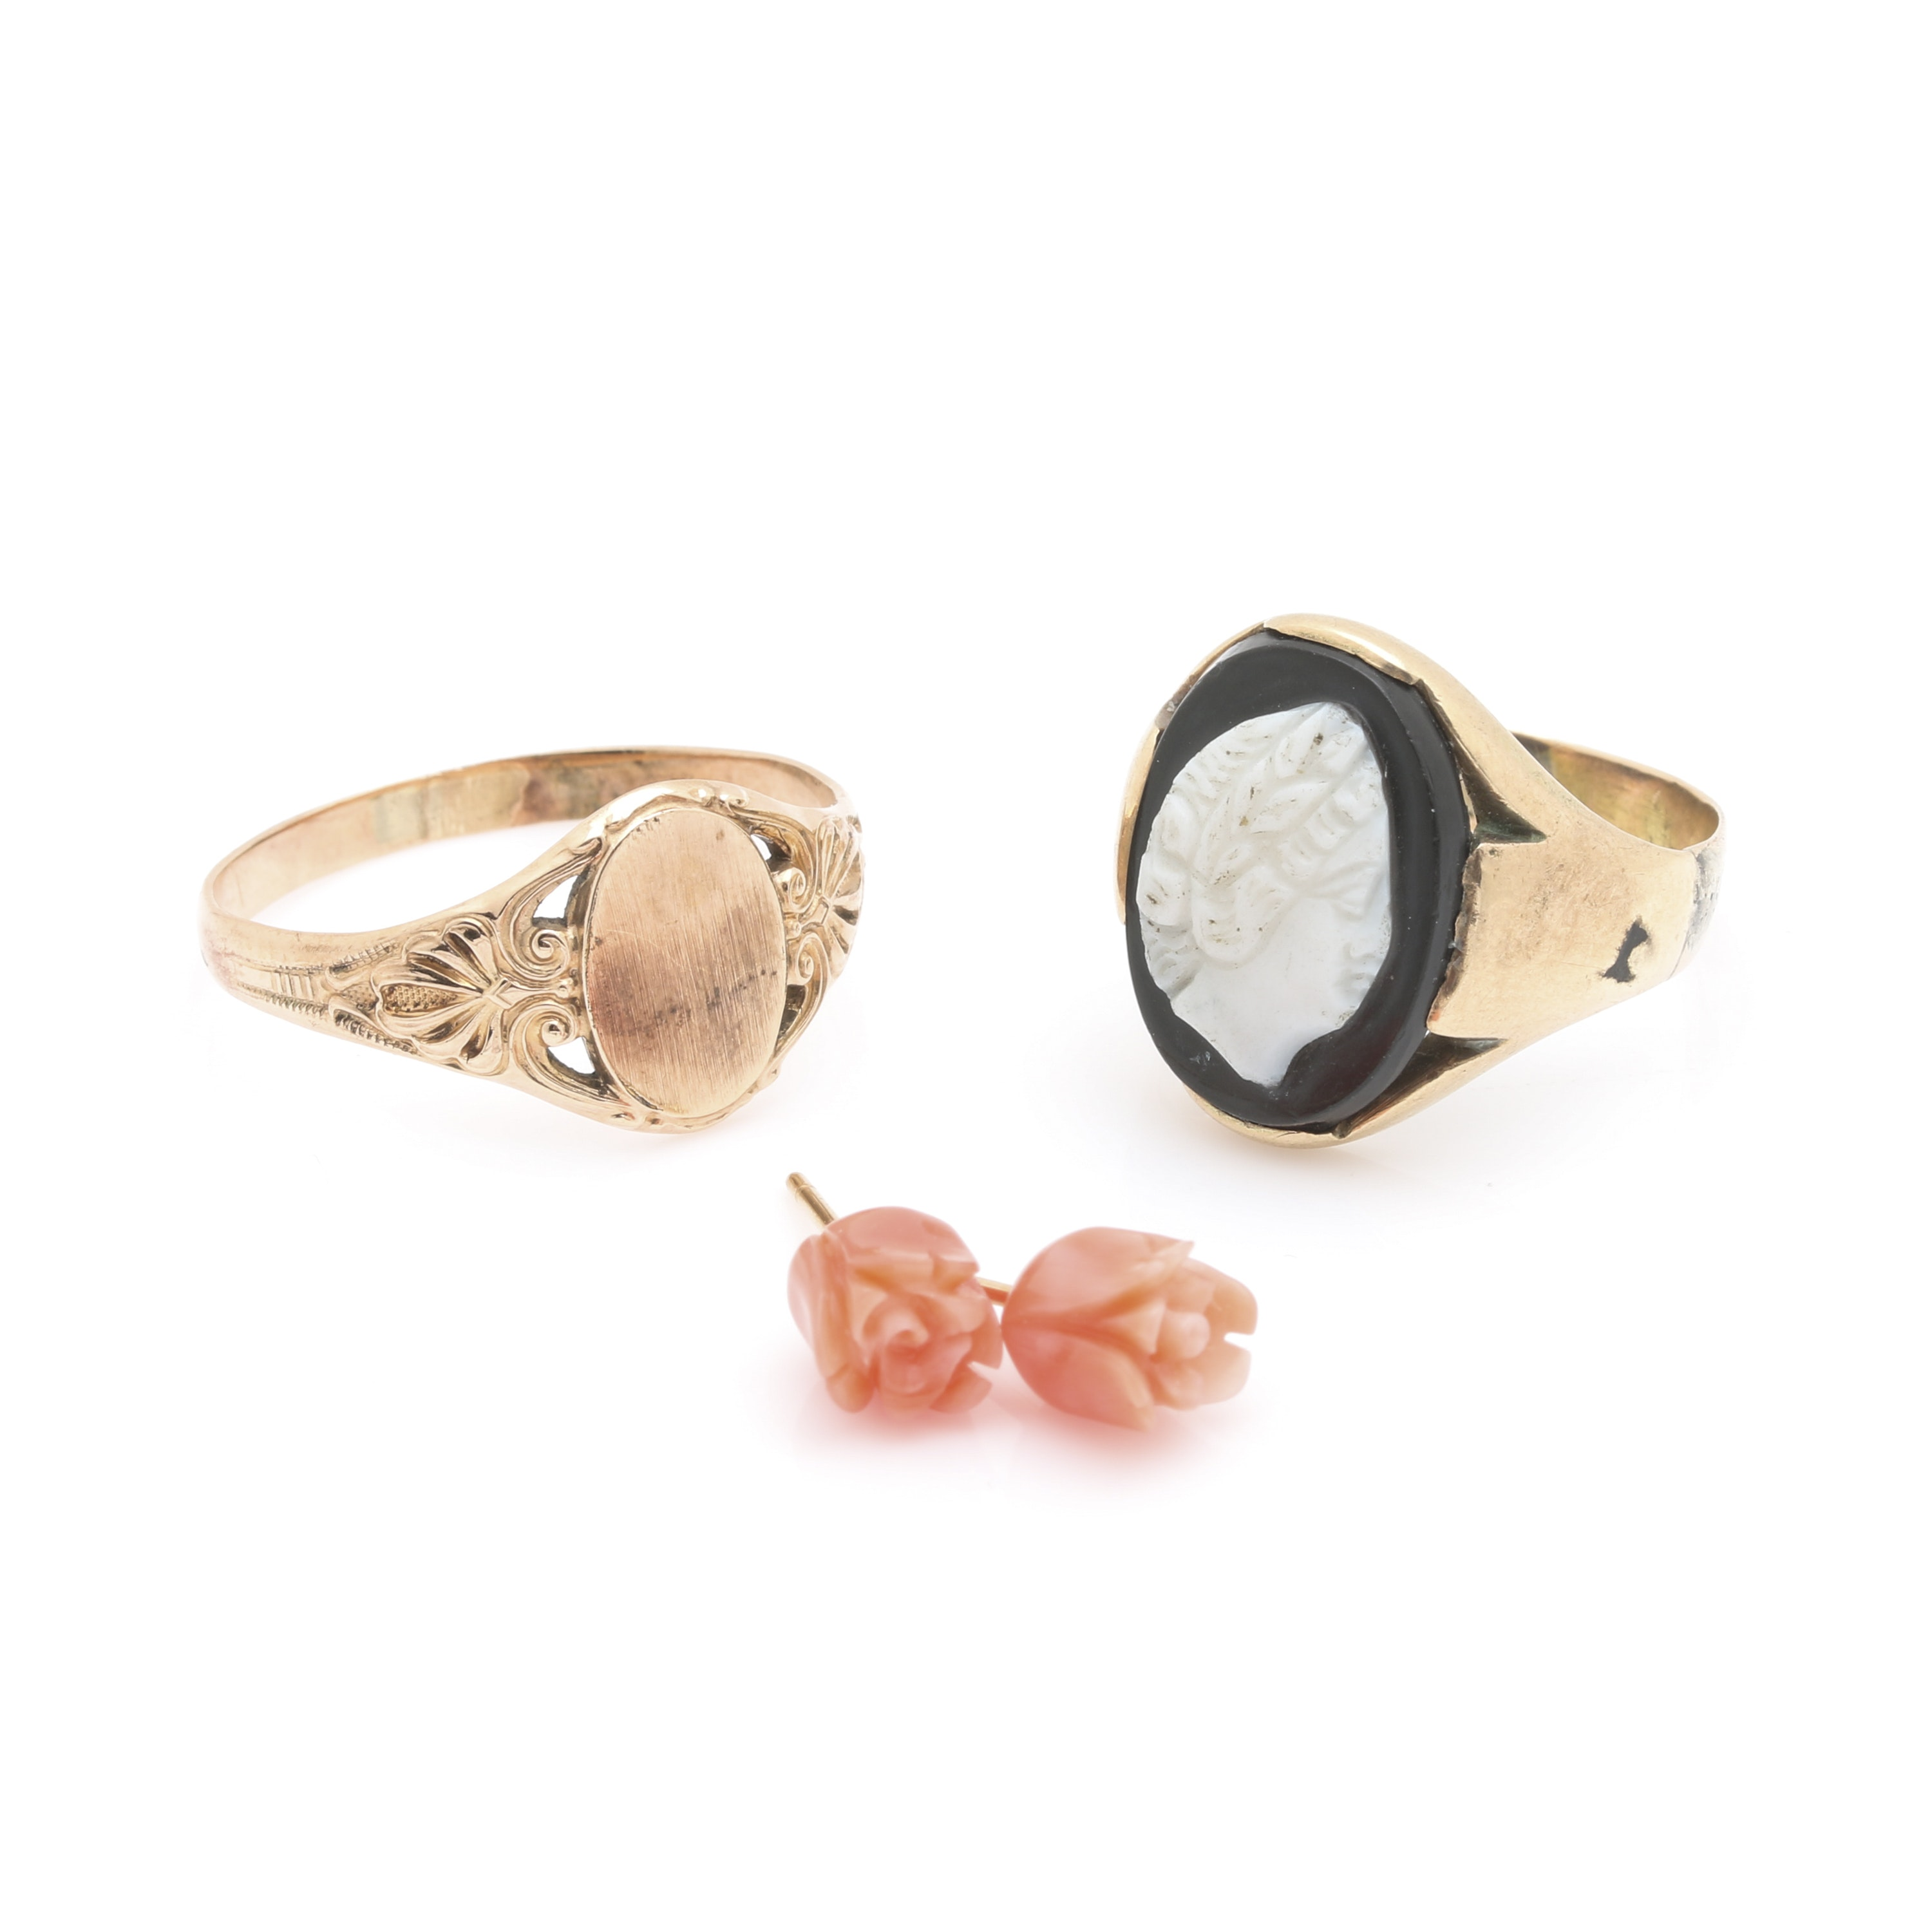 14k yellow gold coral earrings with vintage gold filled cameo and signet rings